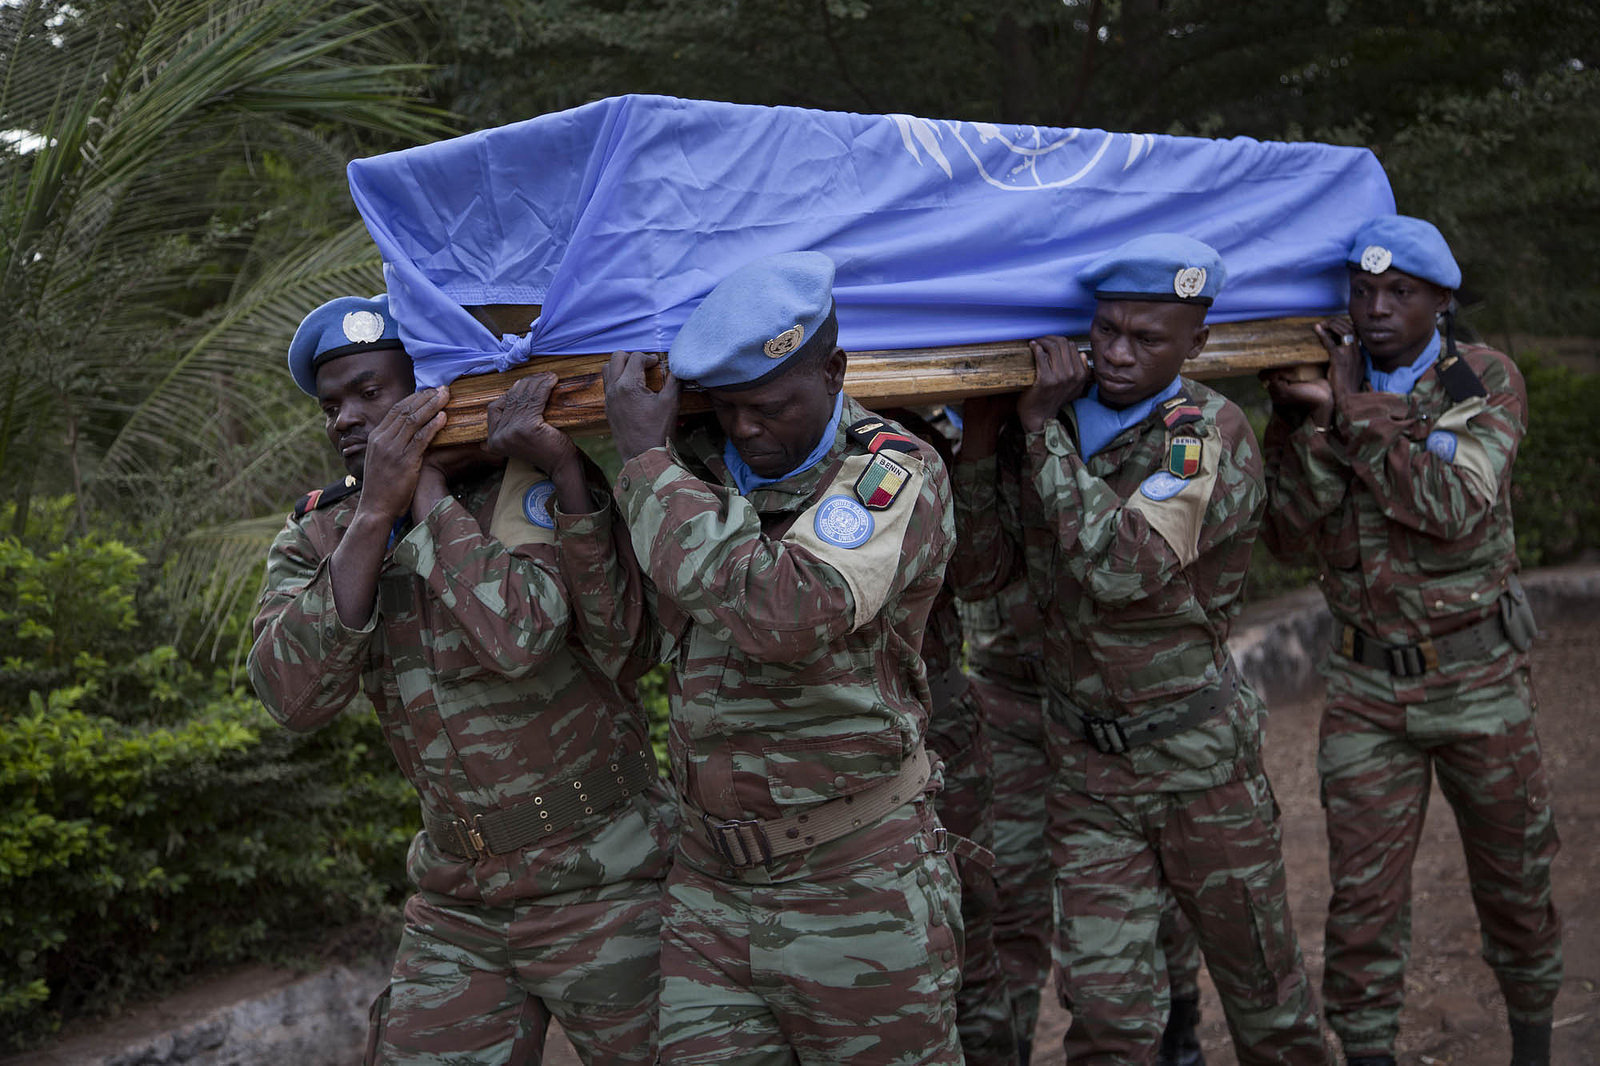 Blue helmets from Benin attend a funeral in honour of 2 Senegalese peacekeepers killed in Kidal, Mali last year. Photo Source: Mission de l'ONU au Mali - UN Mission in Mali via Flickr Creative Commons